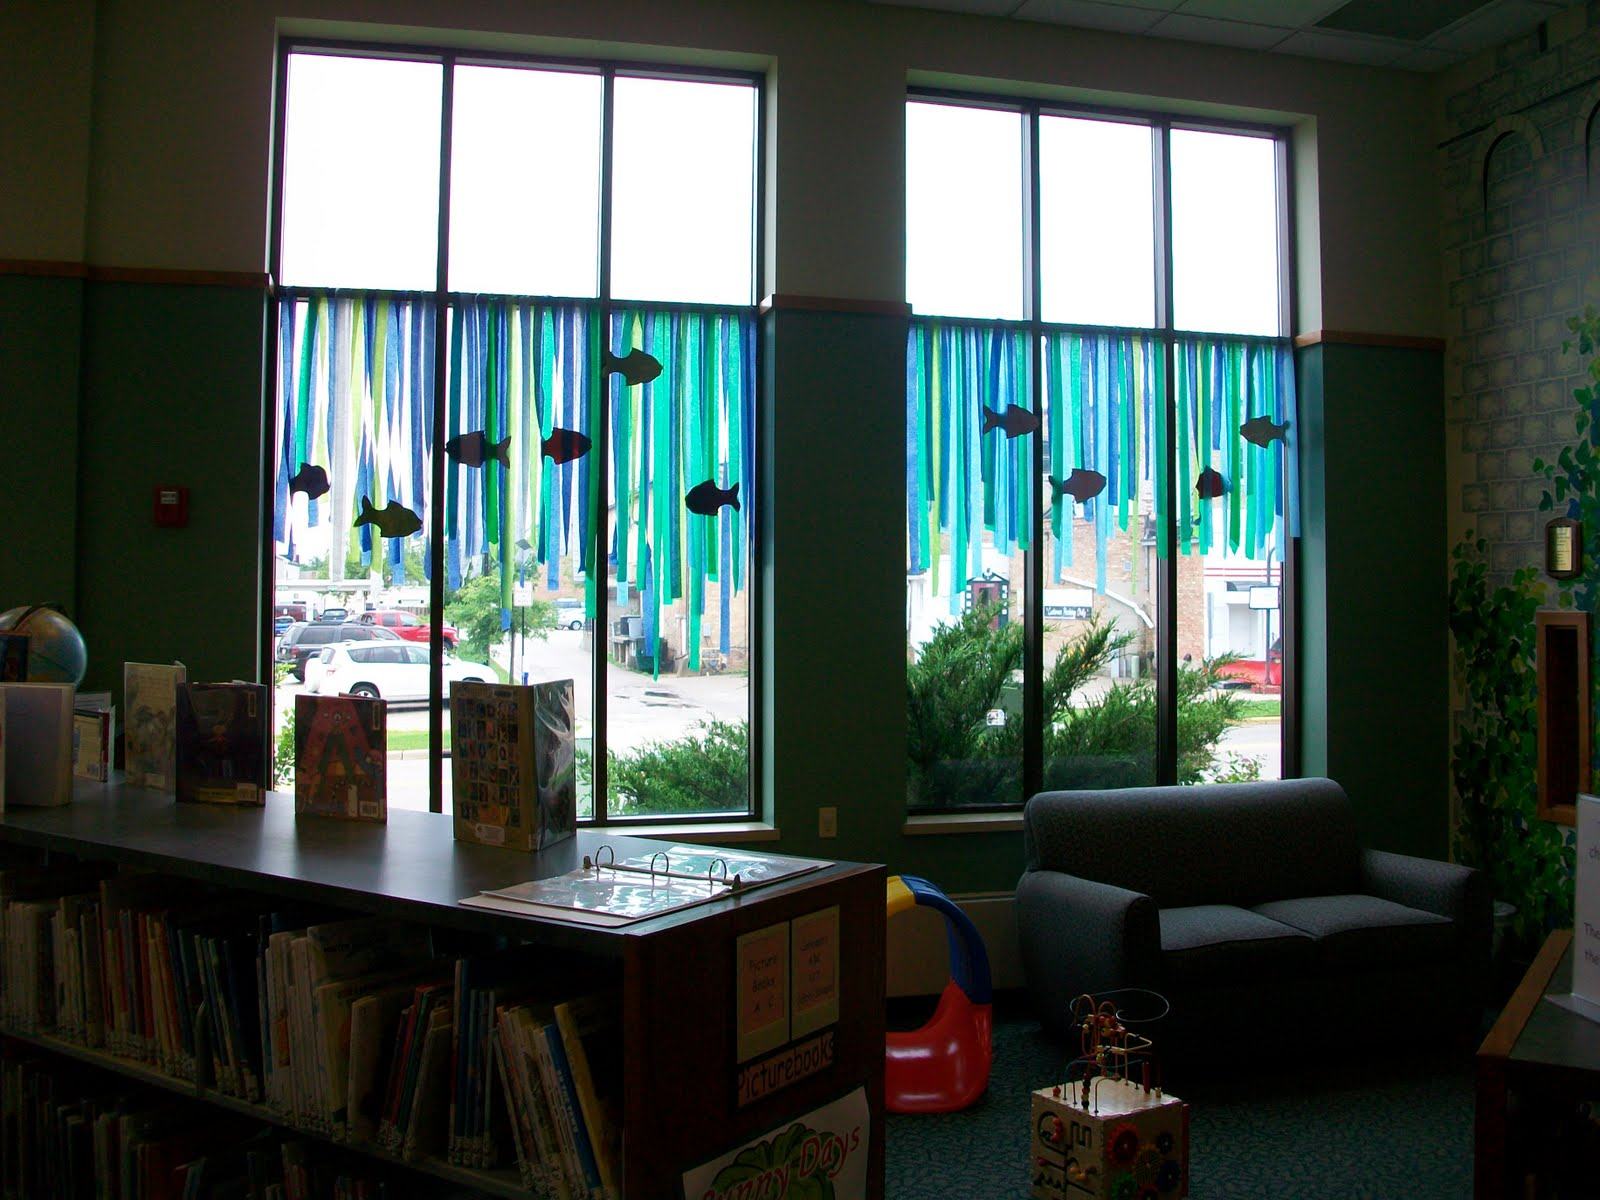 Window Decoration Ideas For Classroom ~ Jean little library summer reading decorations